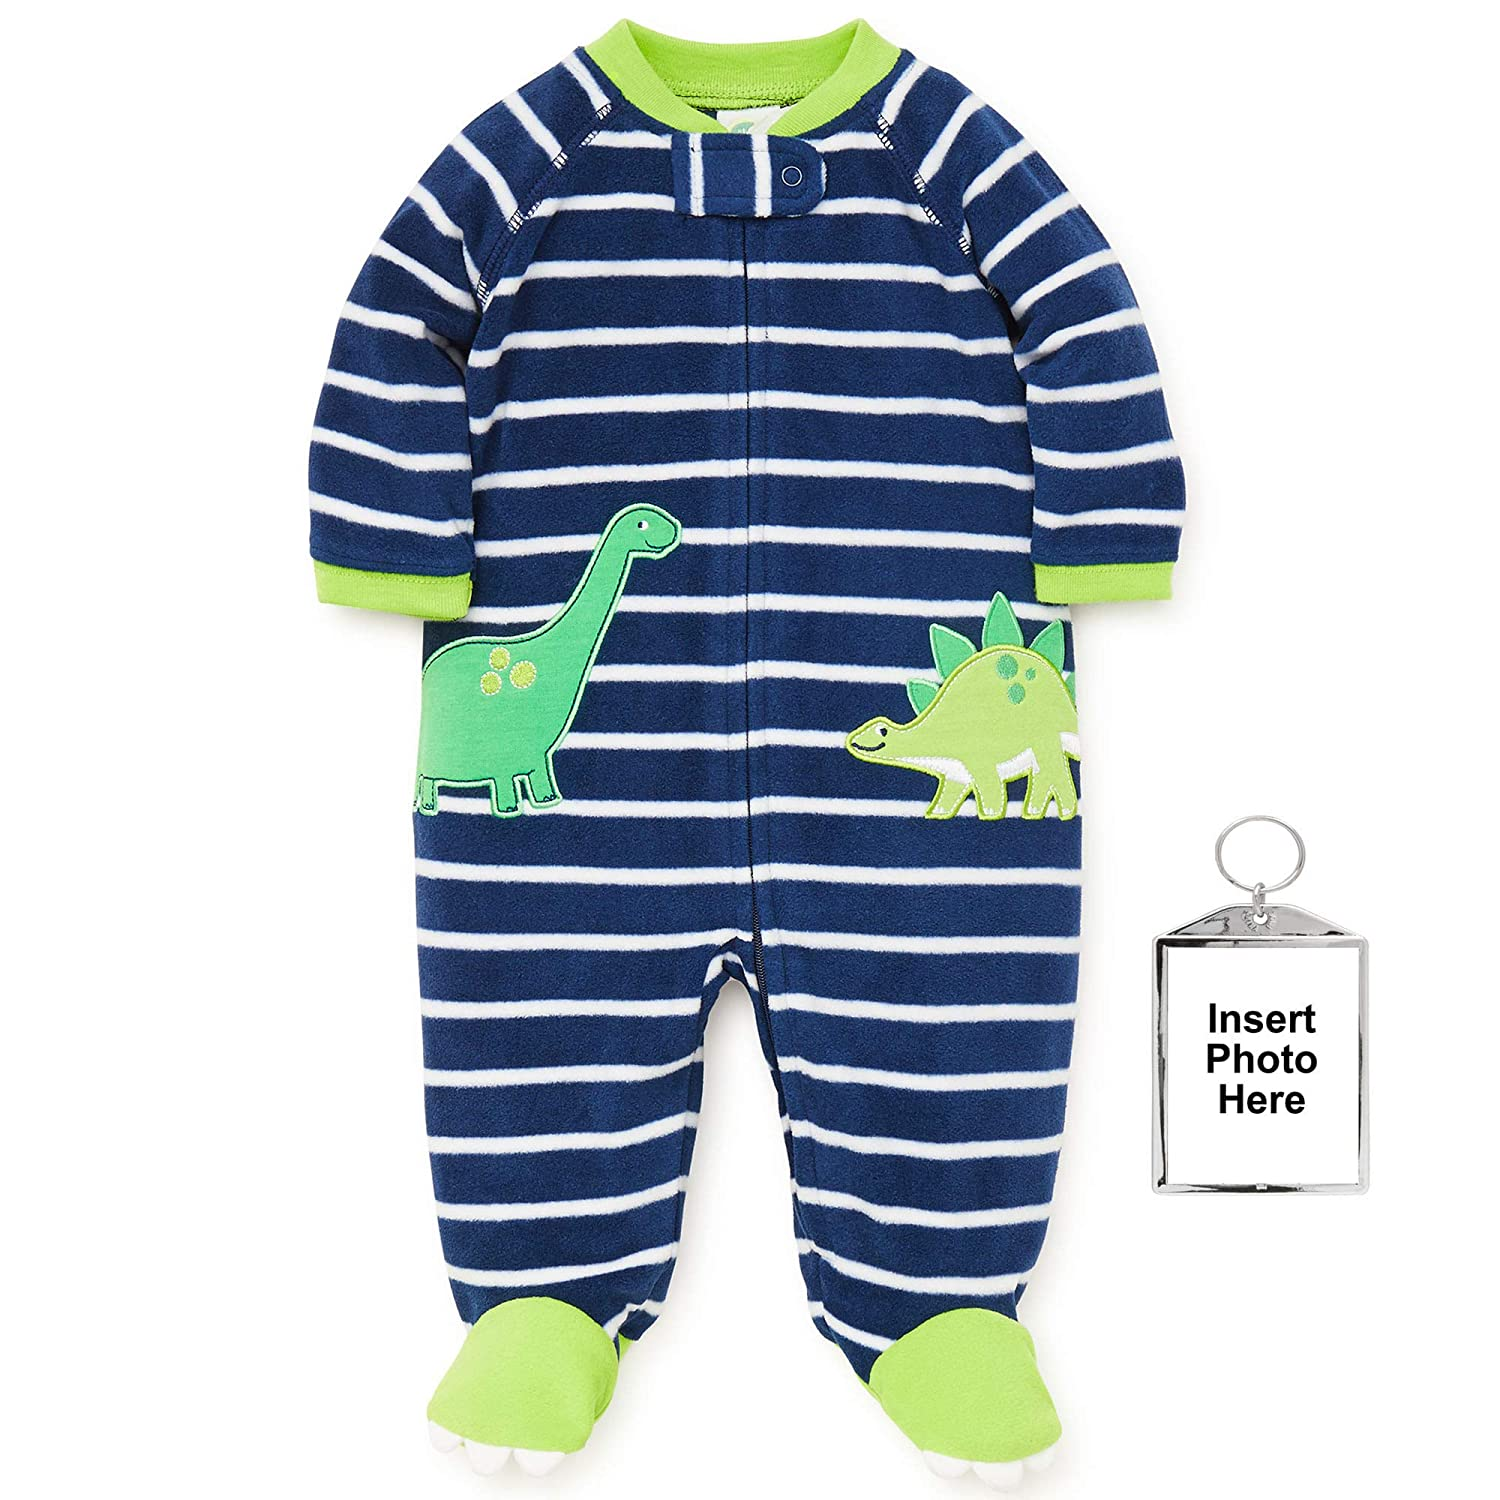 Amazon.com: Little Me Warm Fleece Baby Pajamas Footed Blanket Sleeper Footie Navy Dinosaur 3 Months: Baby